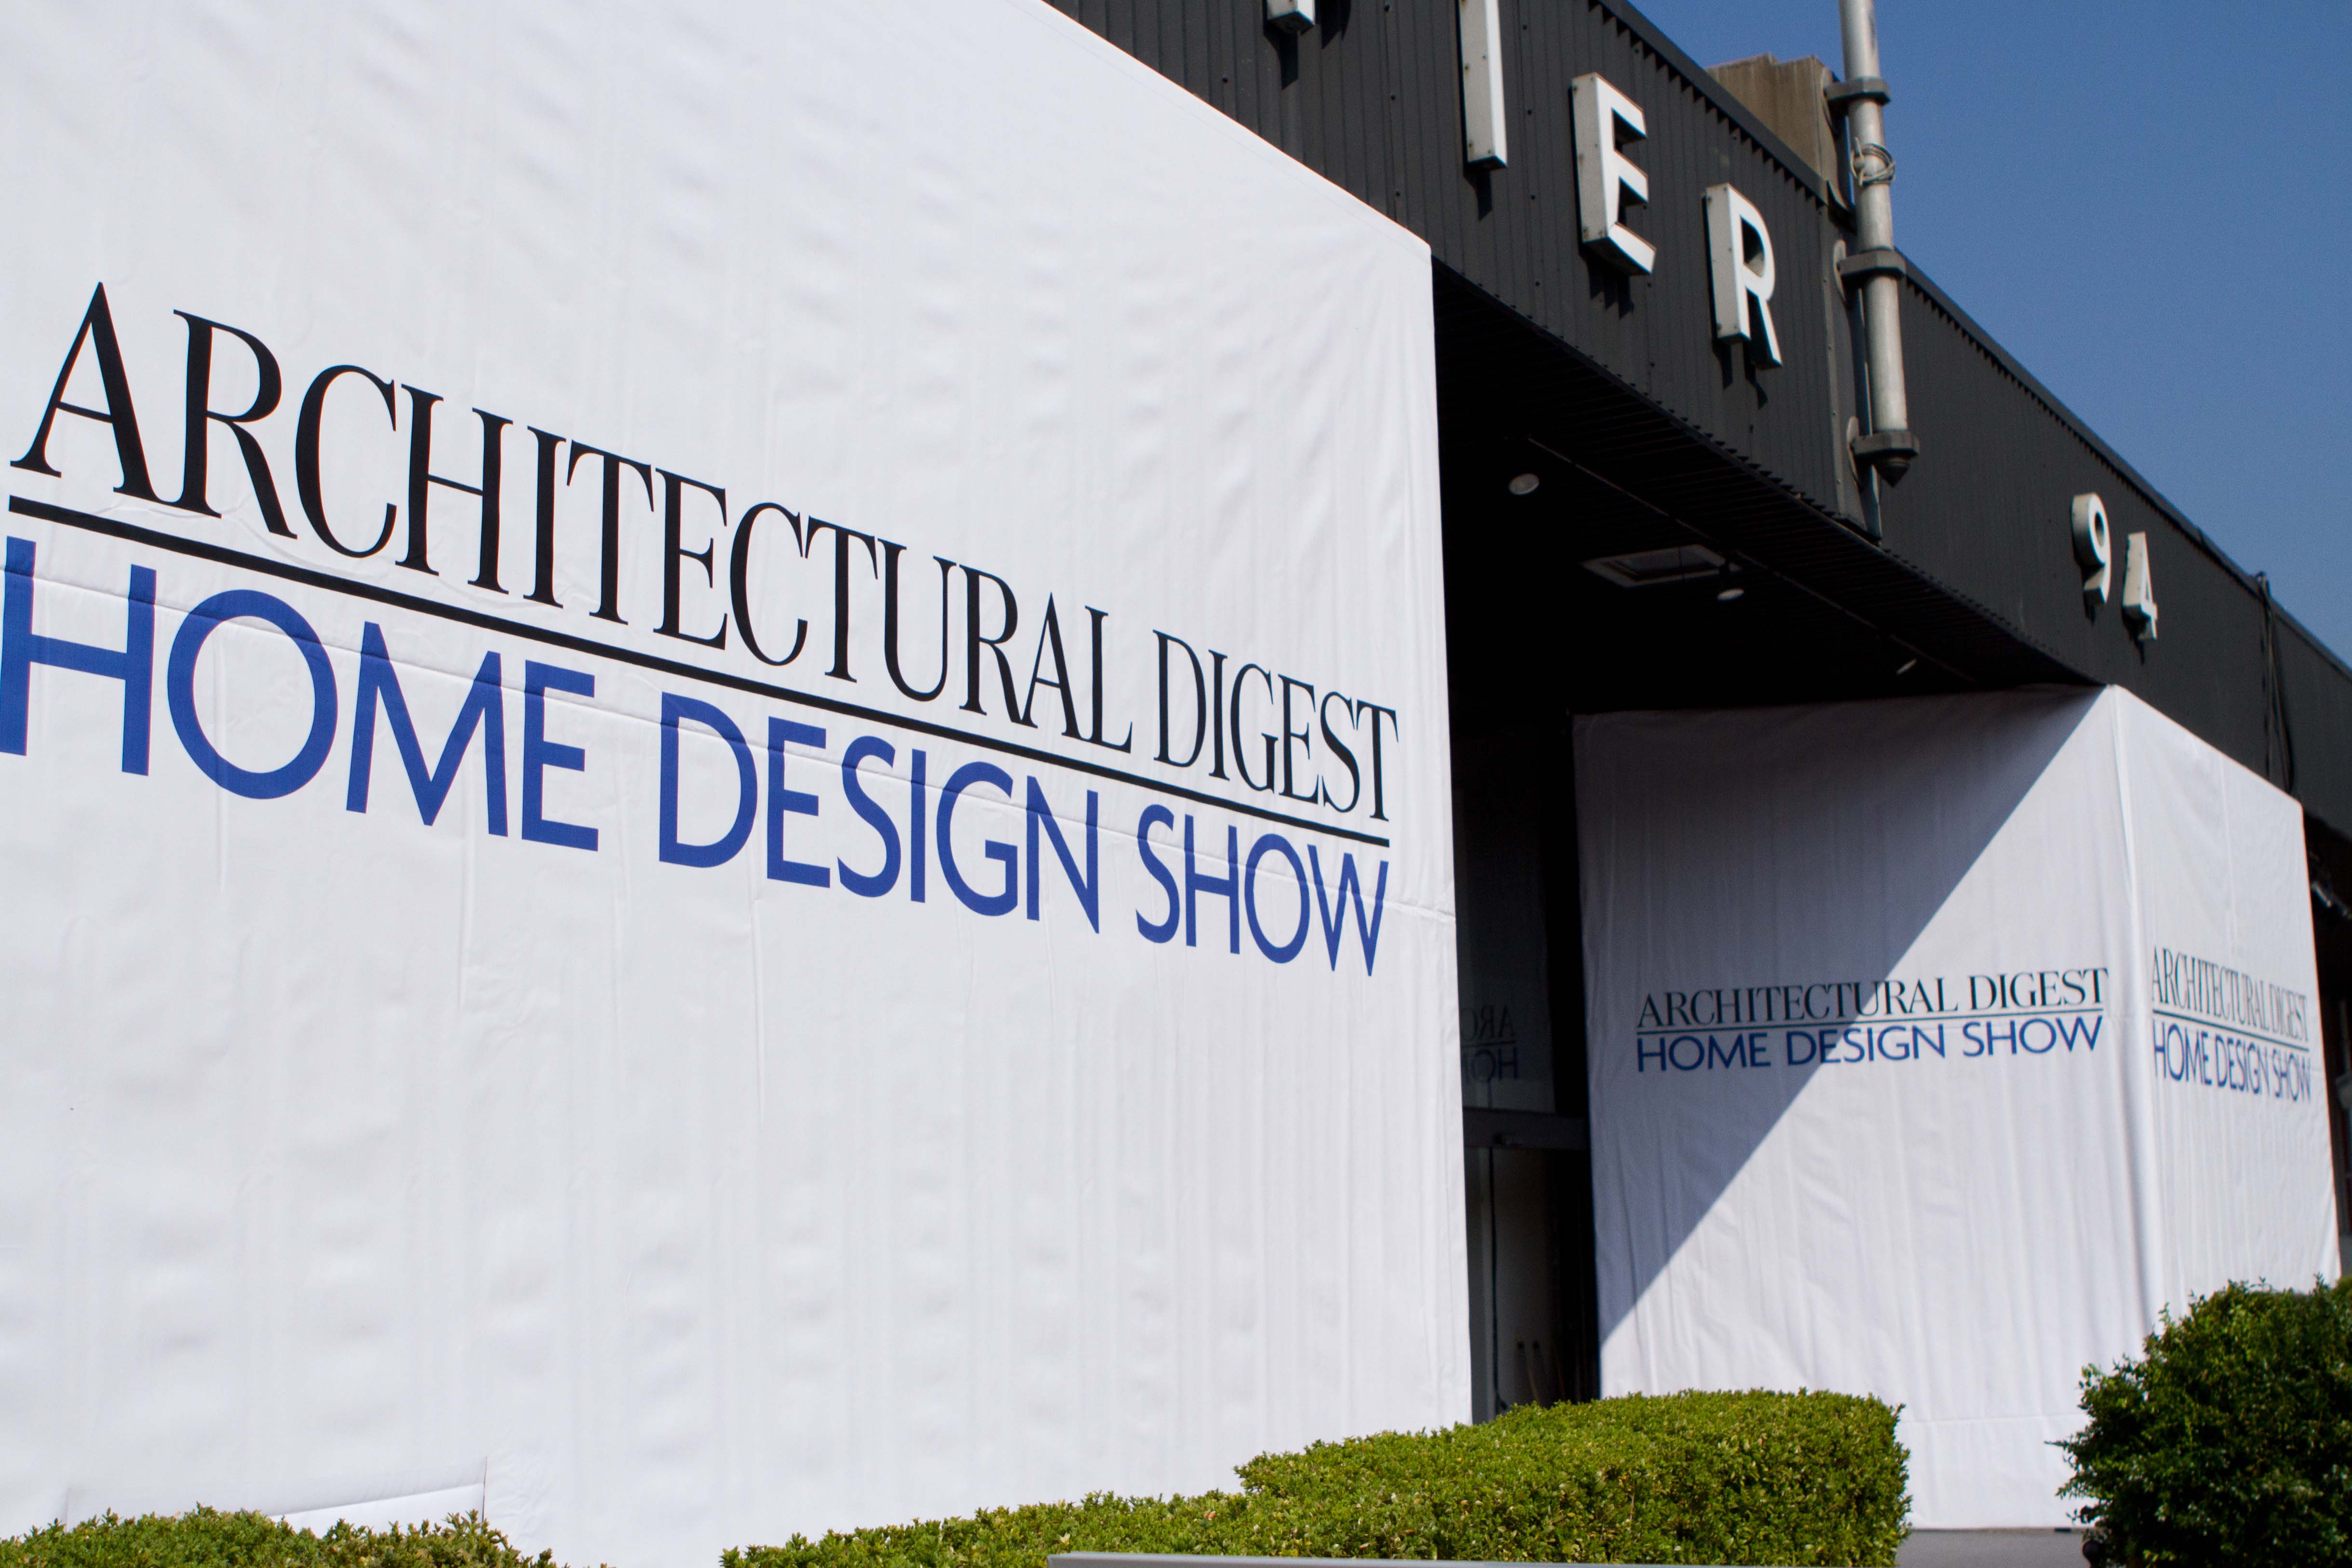 Architectural digest design home show home design and style for Architectural digest show